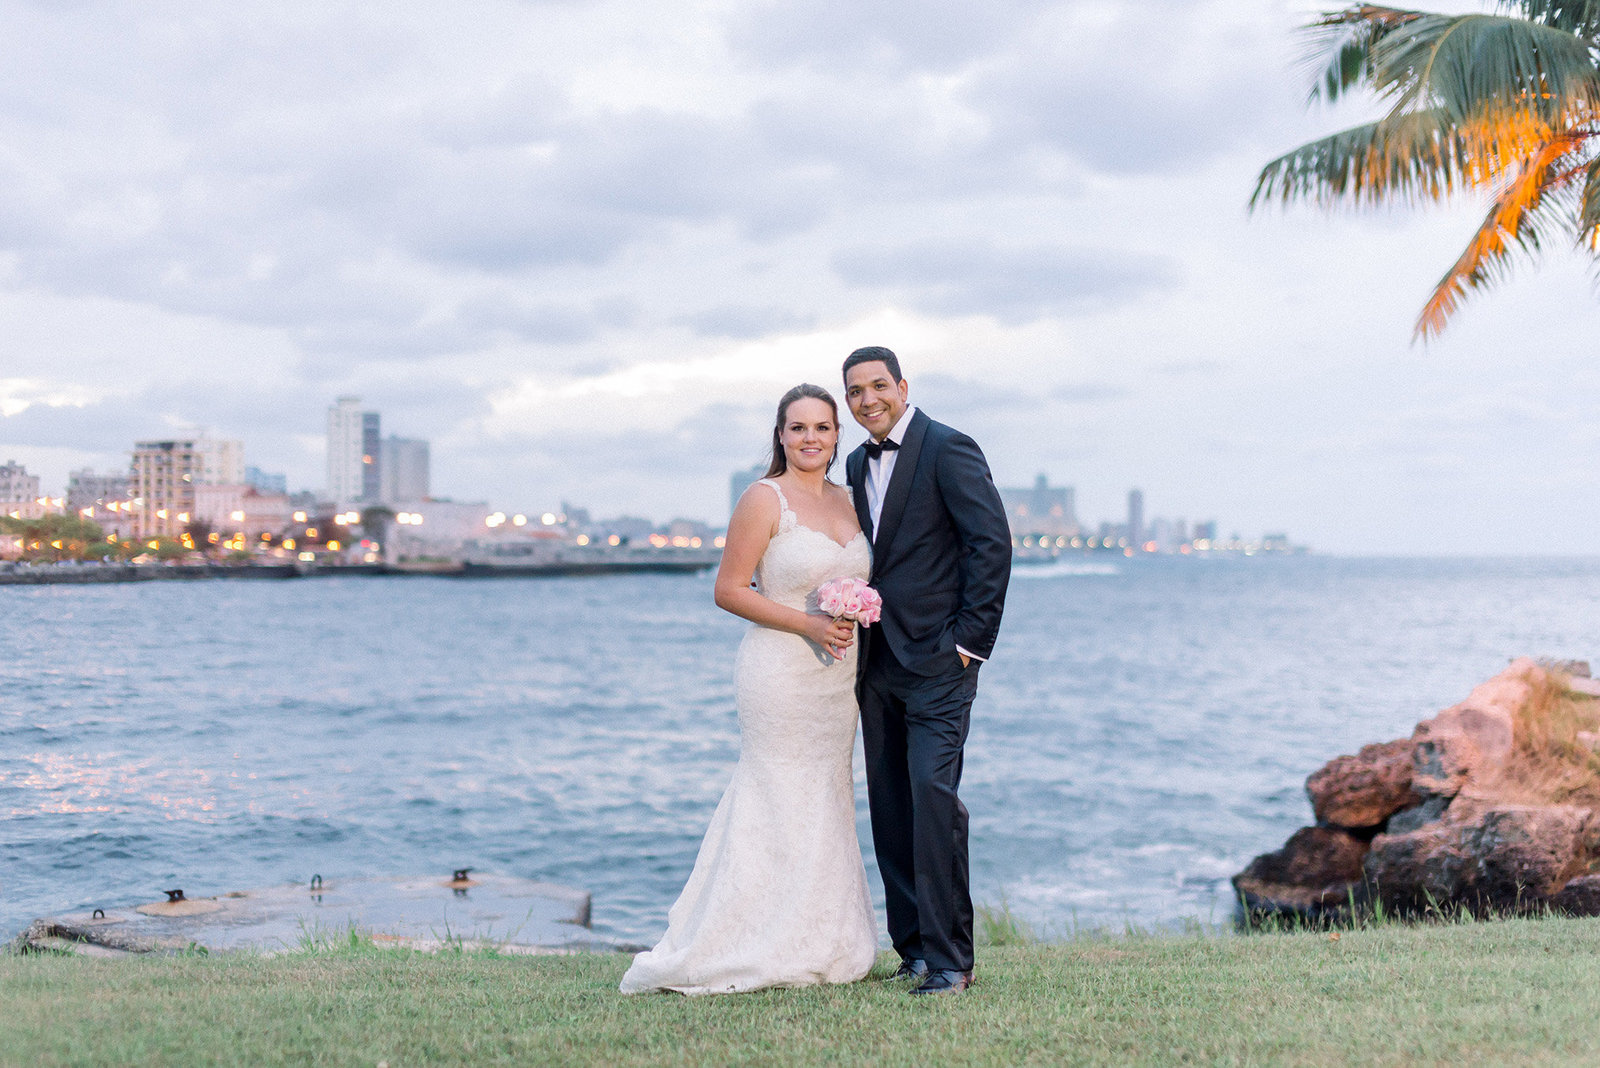 20150328-Pura-Soul-Photo-Cuba-Wedding-89